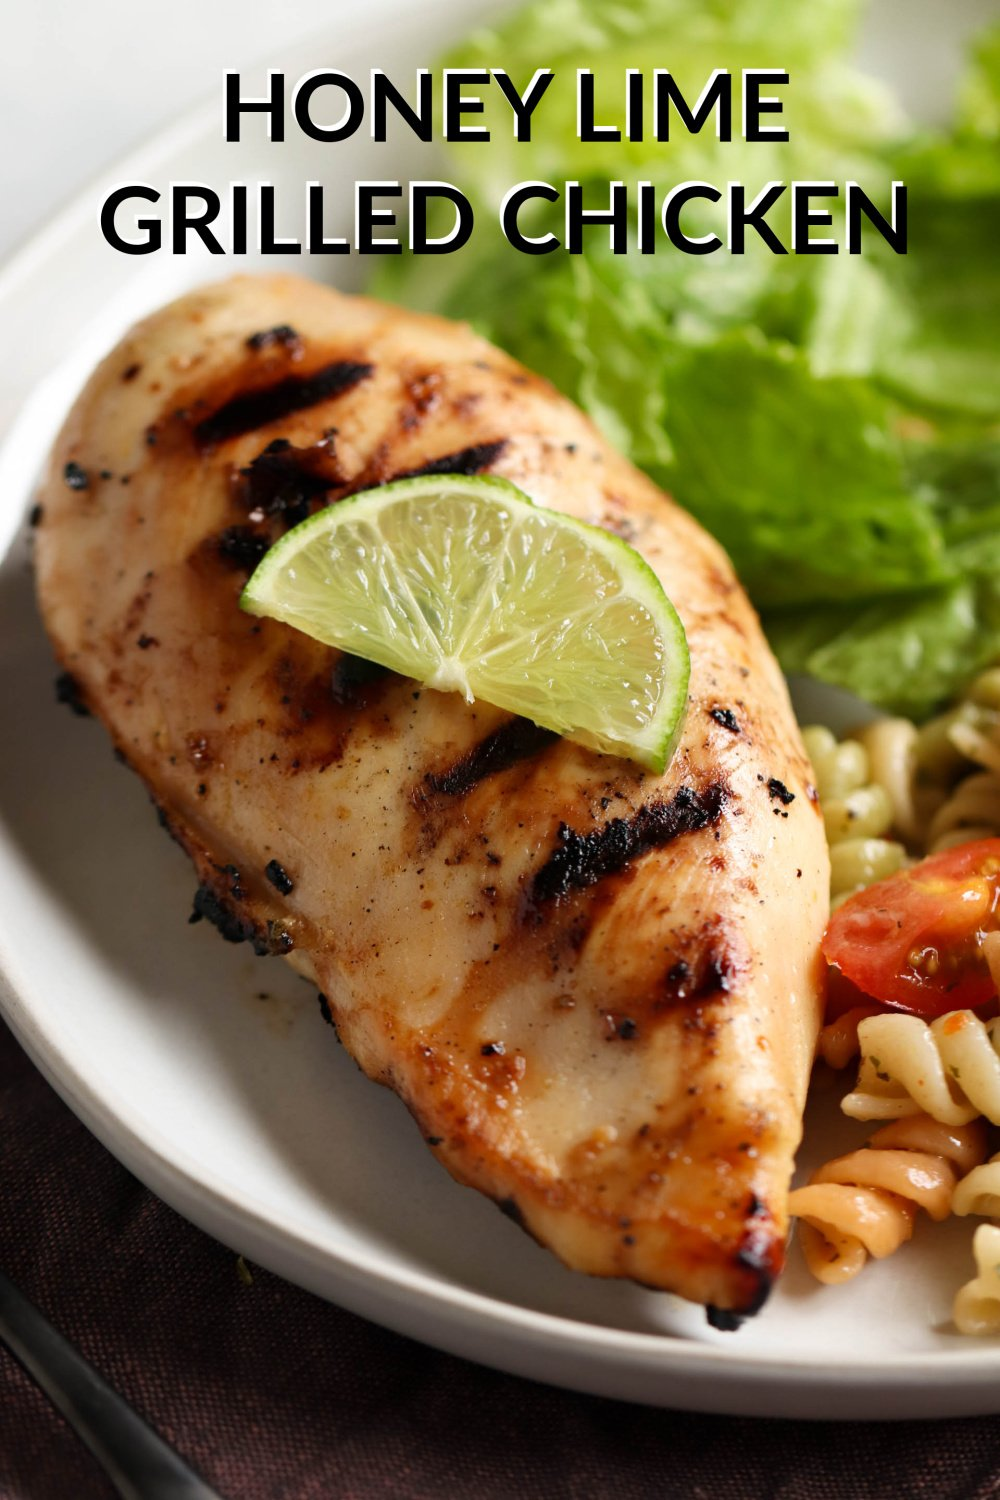 Honey Lime Grilled Chicken on a plate with a side of pasta salad